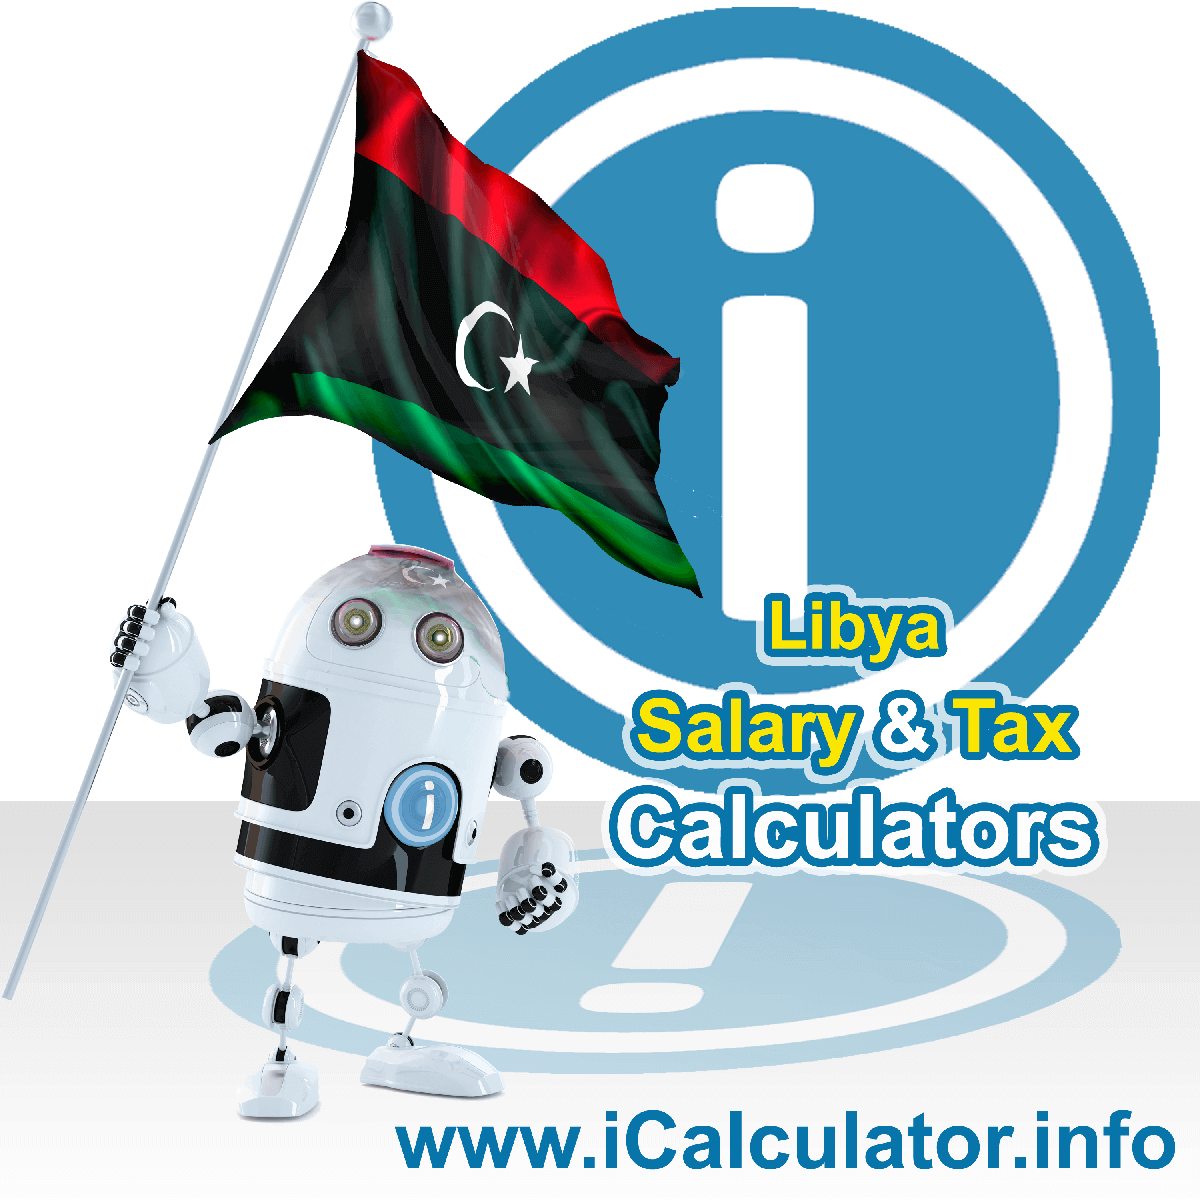 Libya Tax Calculator. This image shows the Libya flag and information relating to the tax formula for the Libya Salary Calculator